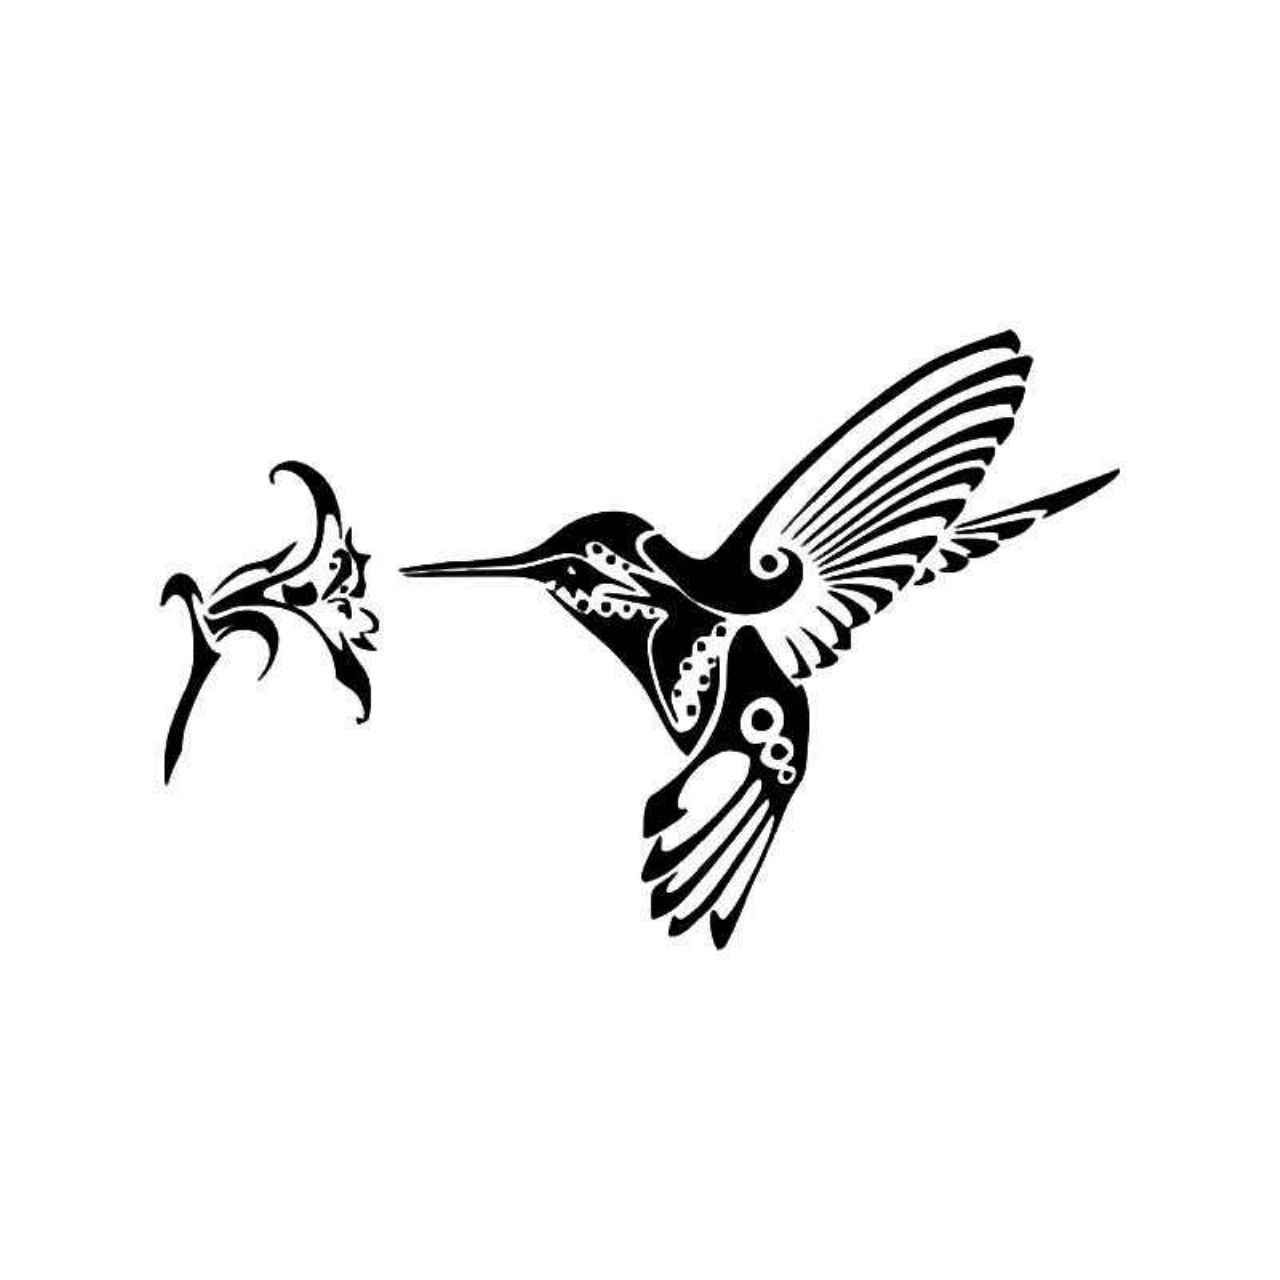 Tribal Hummingbird 2 Vinyl Decal Sticker Templates